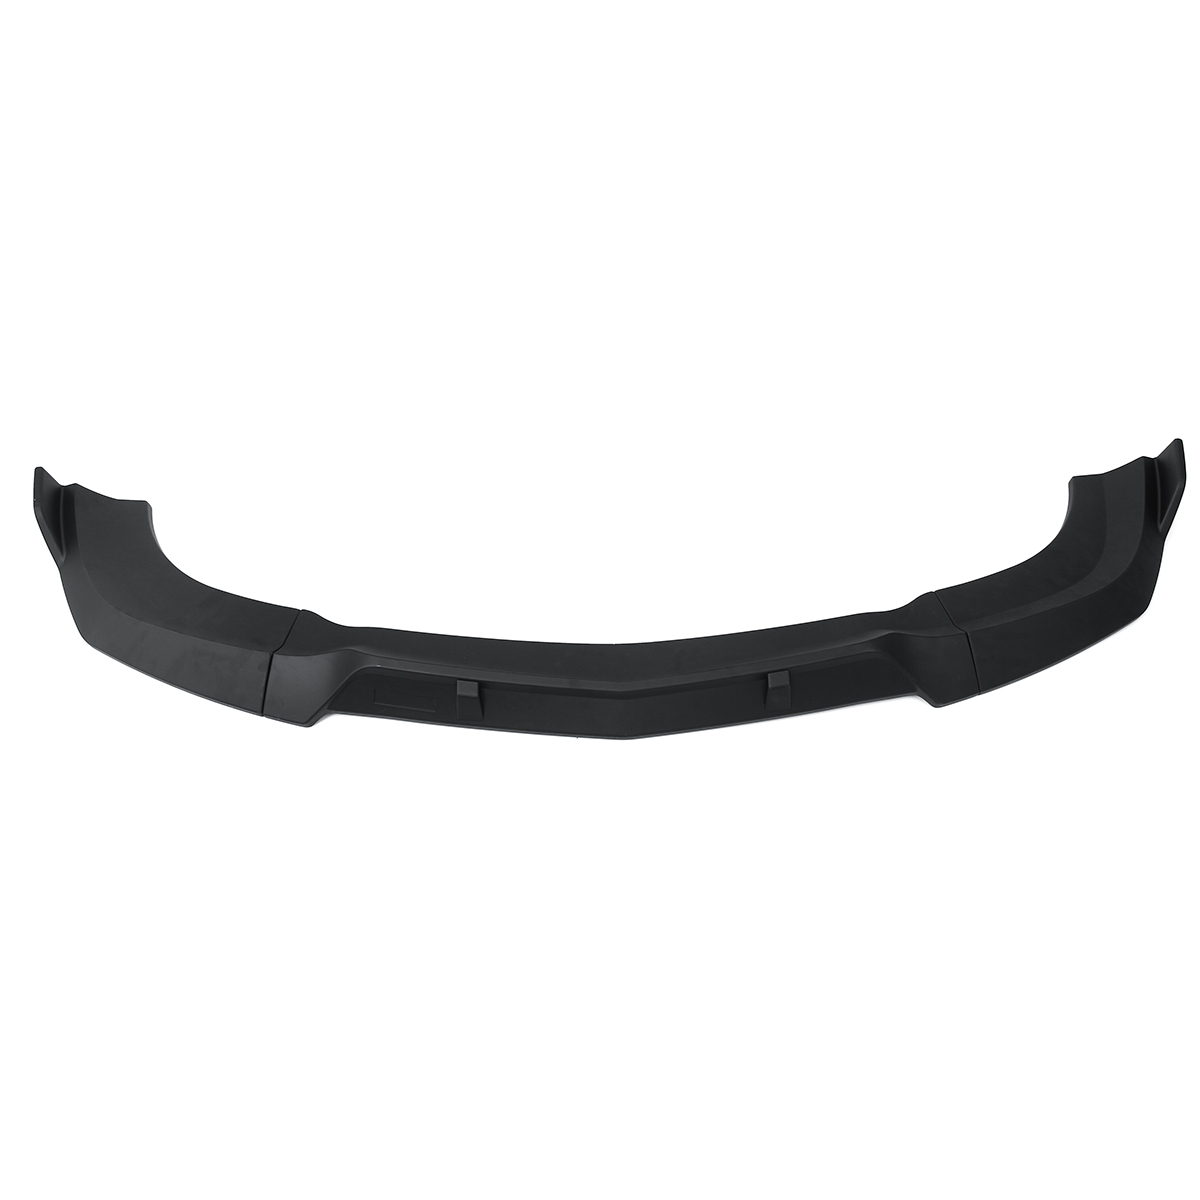 3PCS <font><b>W204</b></font> Bumper <font><b>Lip</b></font> Car <font><b>Front</b></font> Bumper Splitter <font><b>Lip</b></font> Diffuser Protection Spoiler Cover Trim For Mercedes For <font><b>Benz</b></font> <font><b>W204</b></font> 2008-2014 image